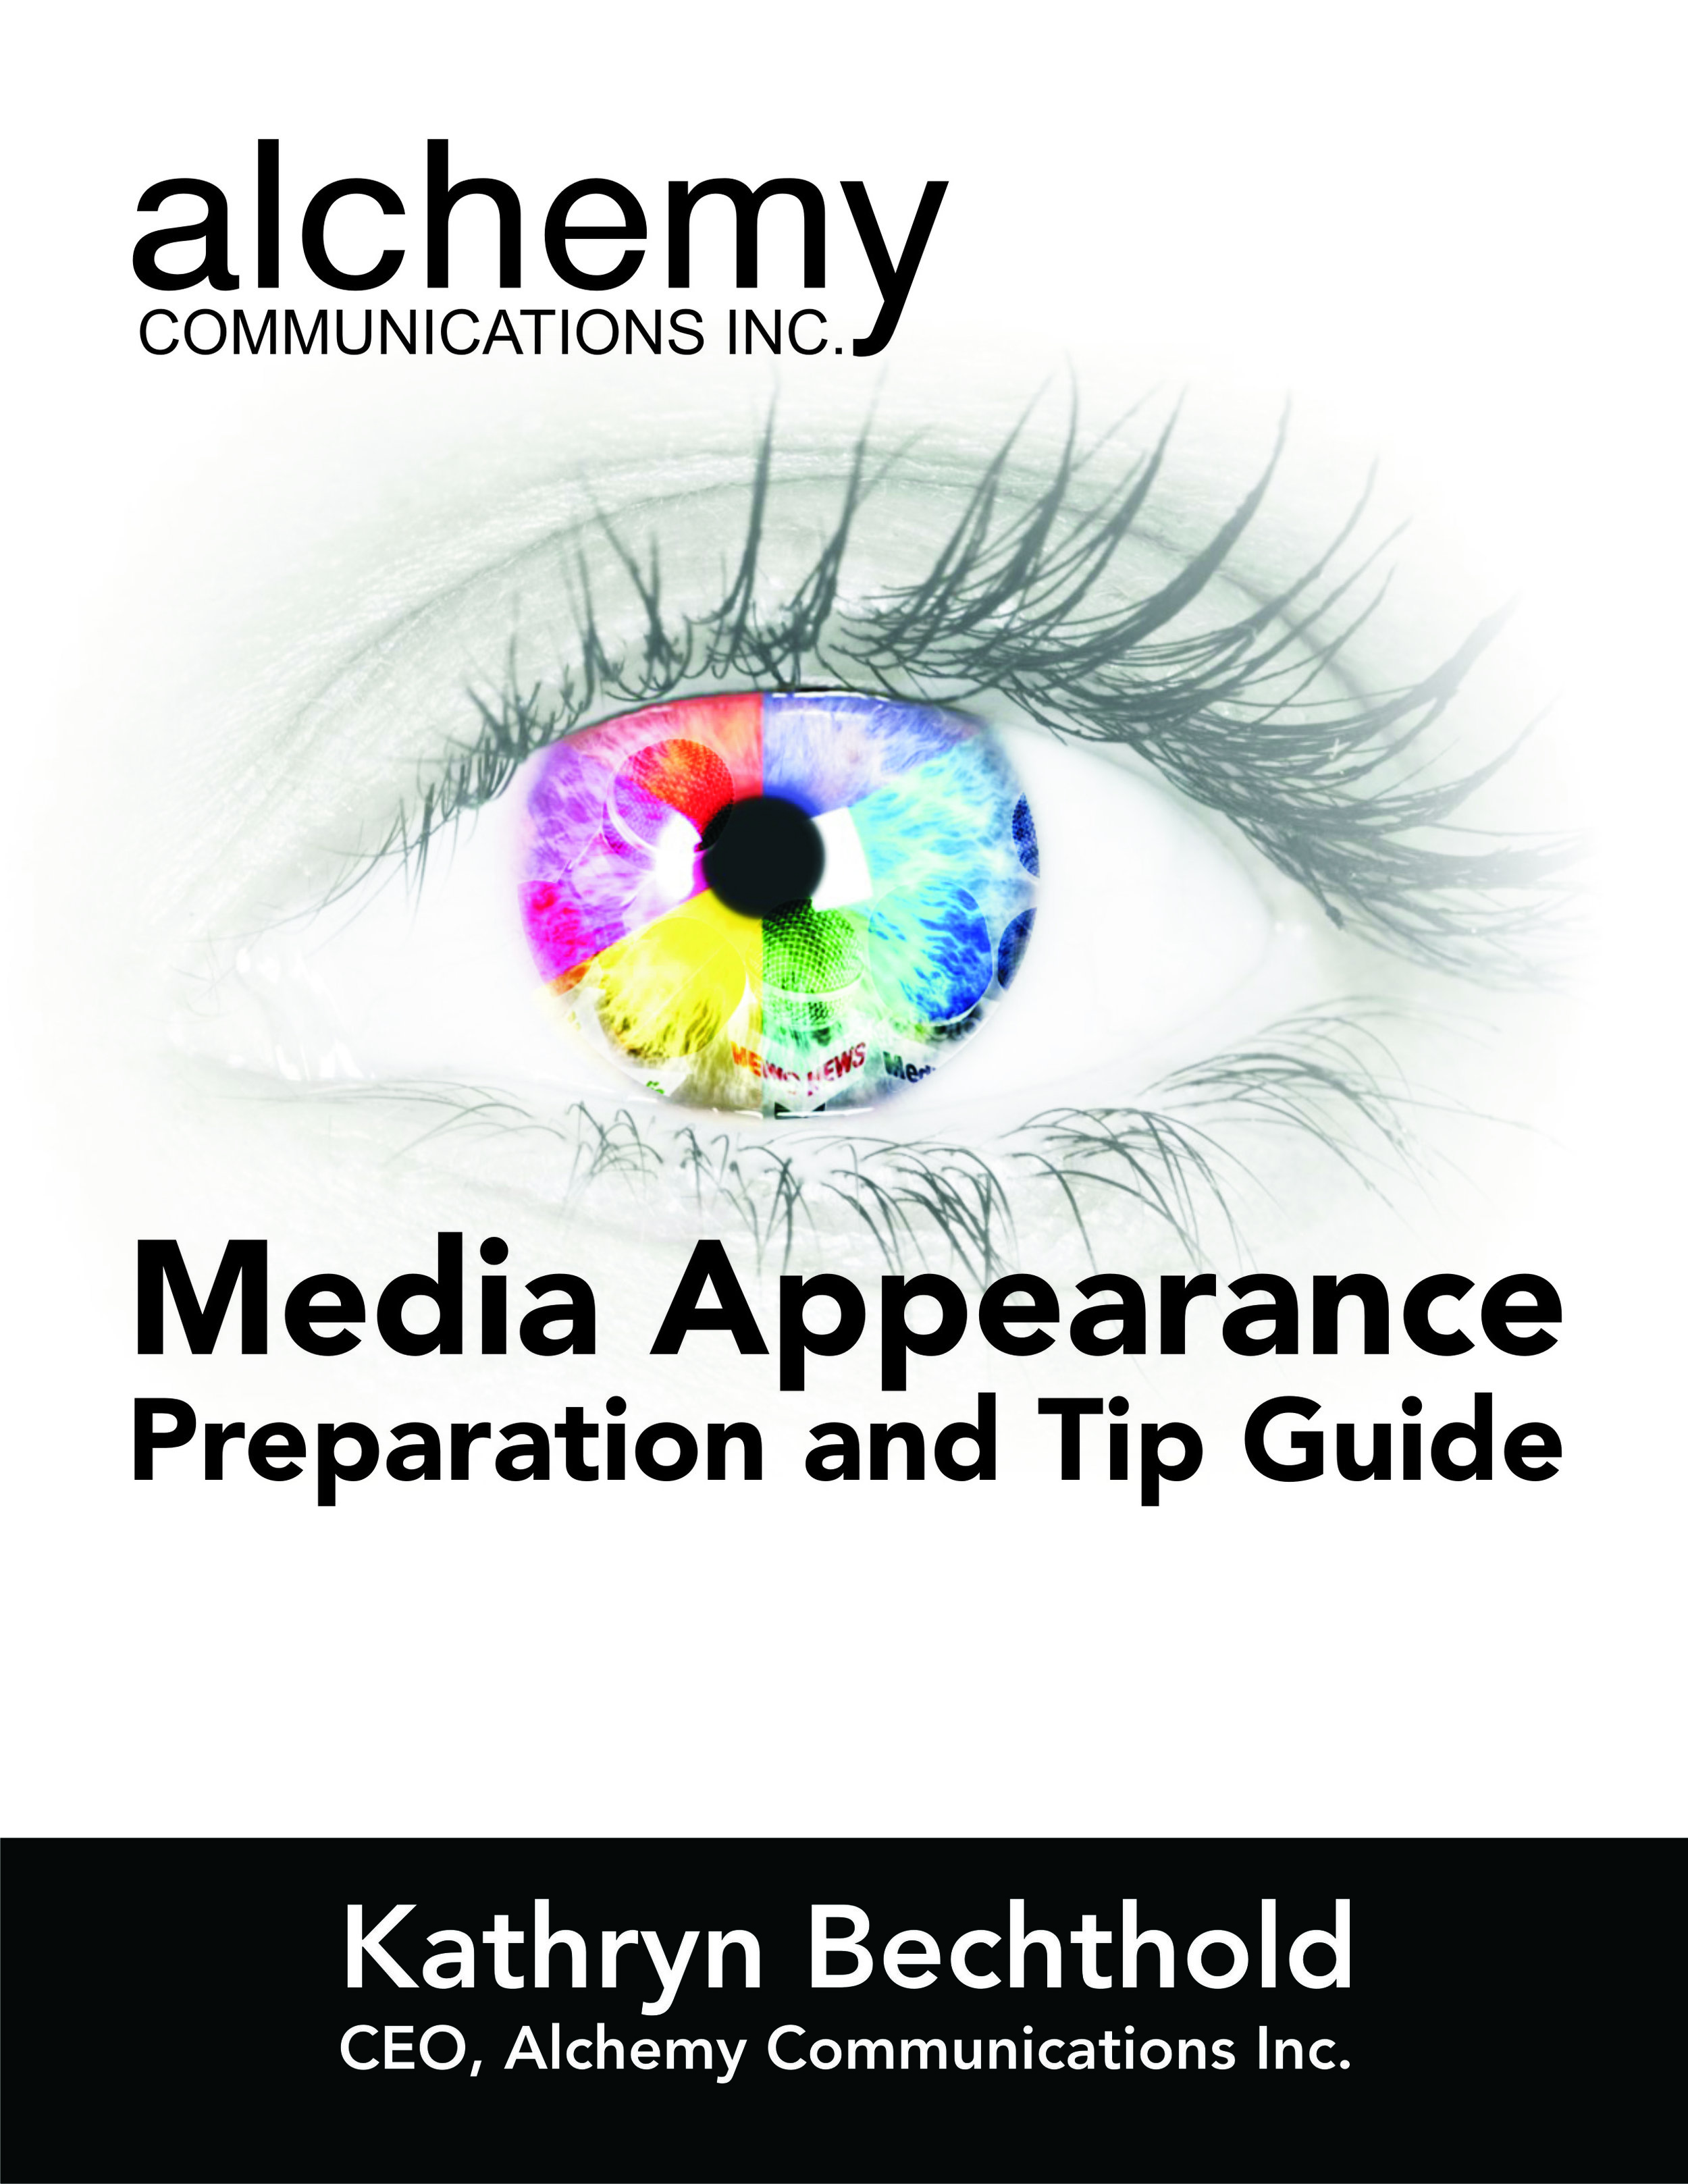 media-appearance-preparation-and-tip-guide-cover.jpg